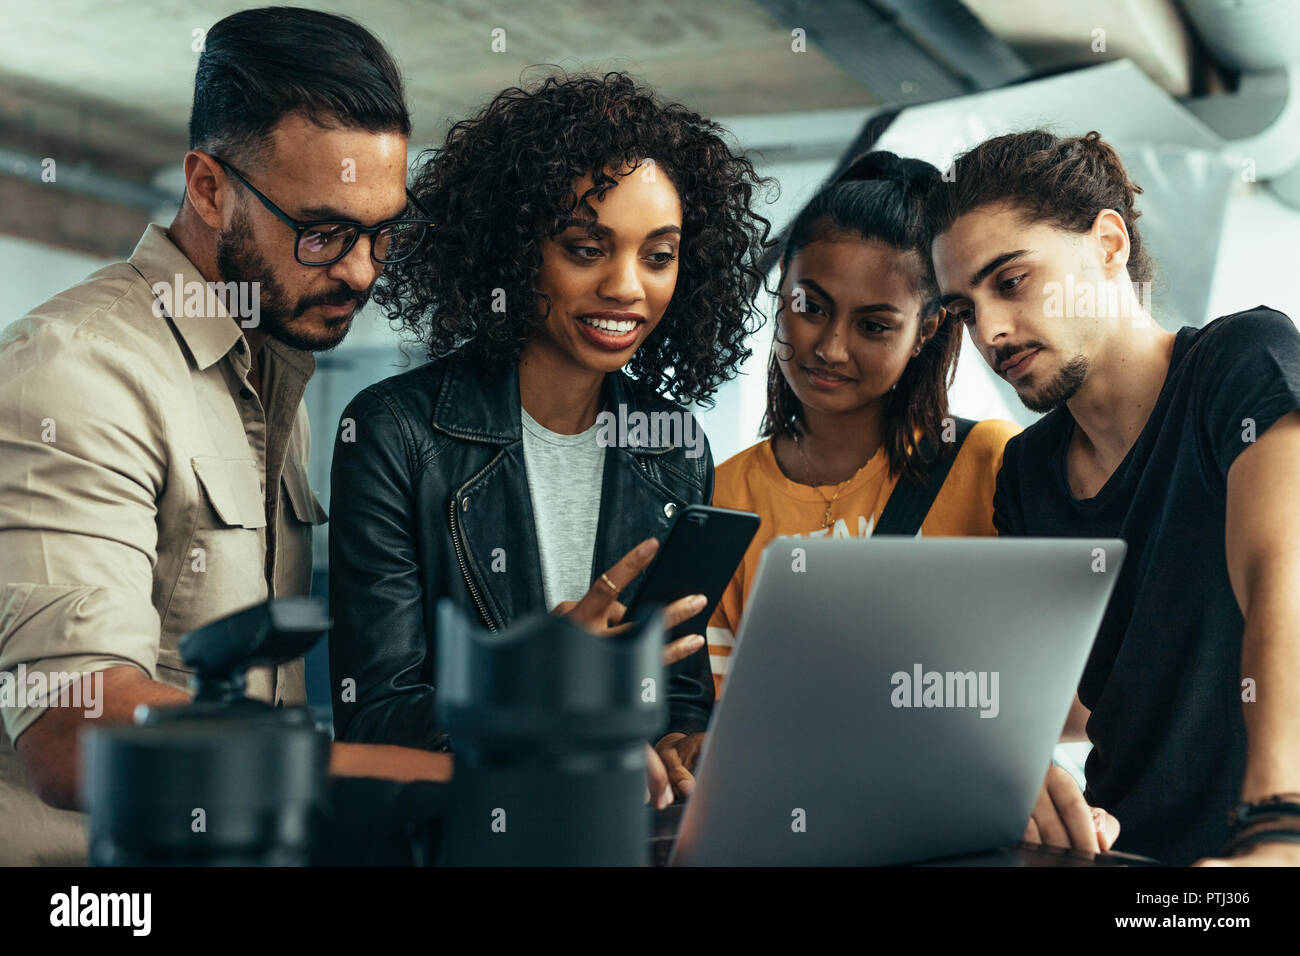 Photographer with his team looking at the photographs on a laptop. Model holding mobile phone standing with photographers looking at shoot photos. - Stock Image